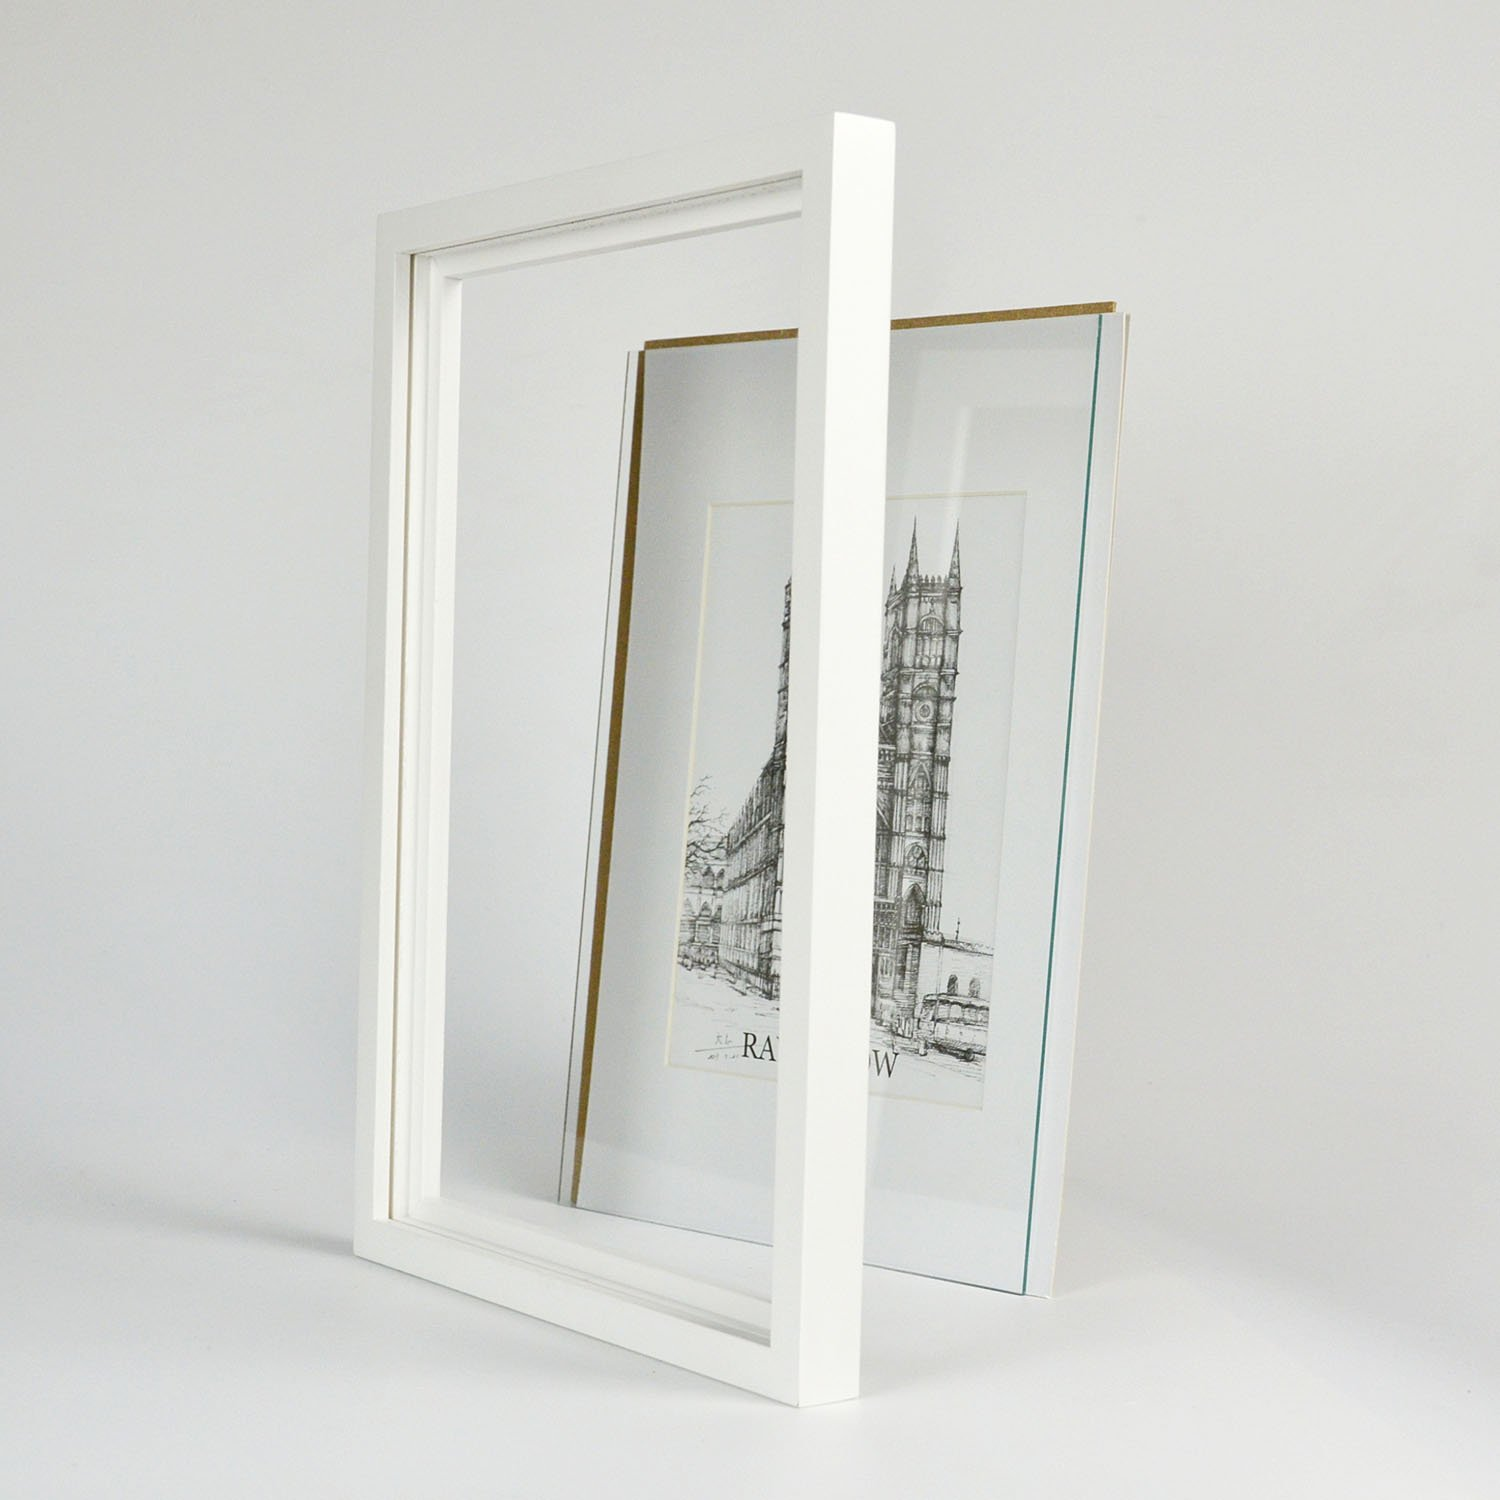 Ray & Chow 5x7 inch White Picture Frame - Made to Display Pictures 4x6 with Mat or 5x7 Without Mat- Solid Wood- Glass Window- with Stand or Wall Hanging -3 Pack by Ray & Chow